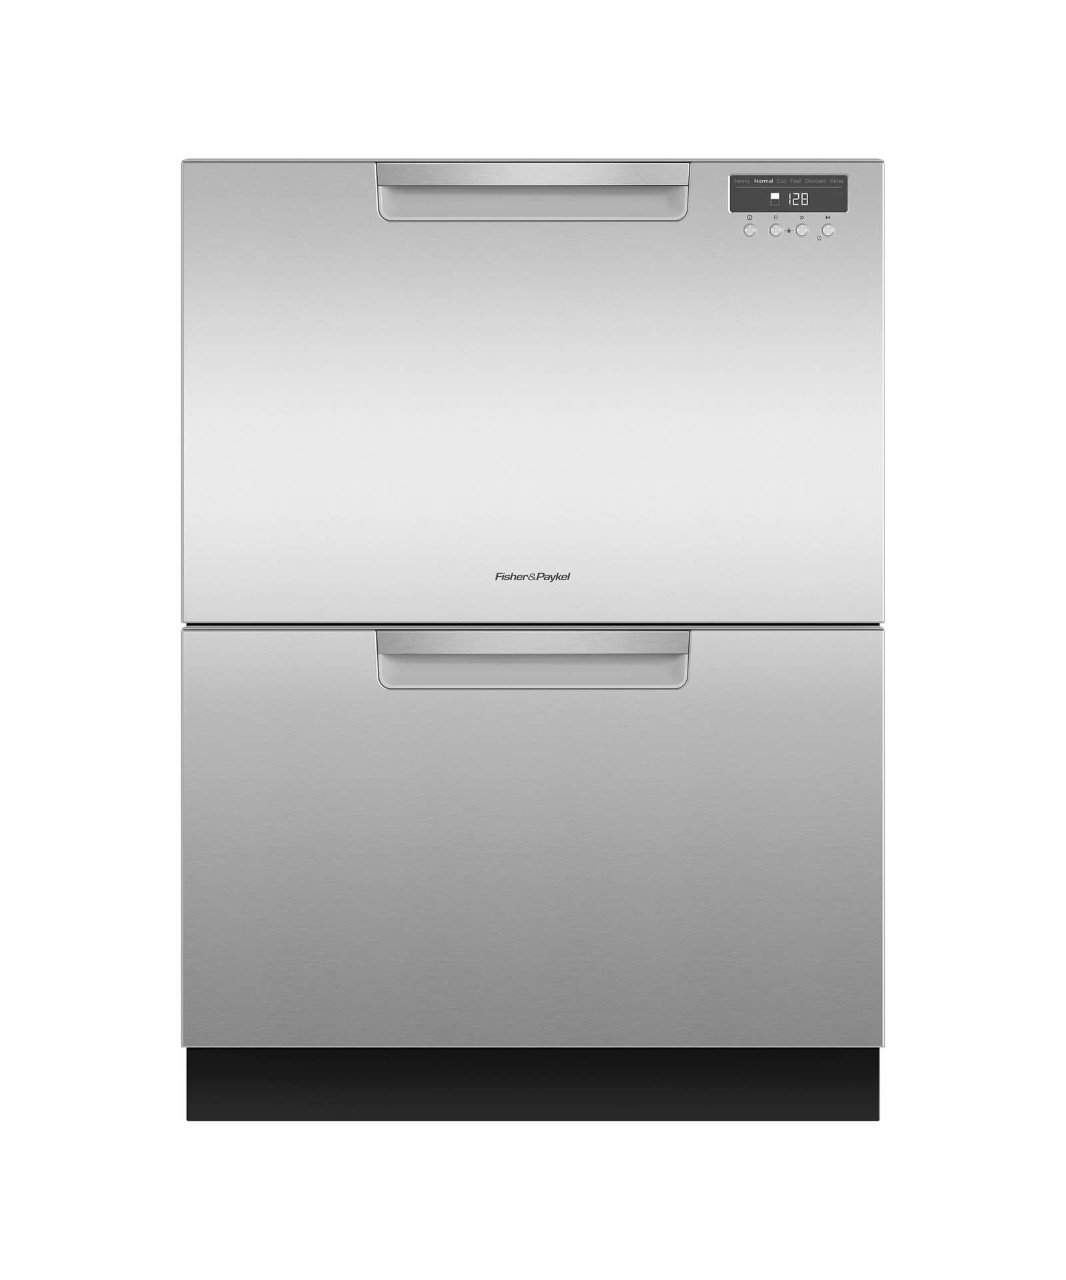 DISPLAY MODEL.  ADA compliant Double DishDrawer dishwasher